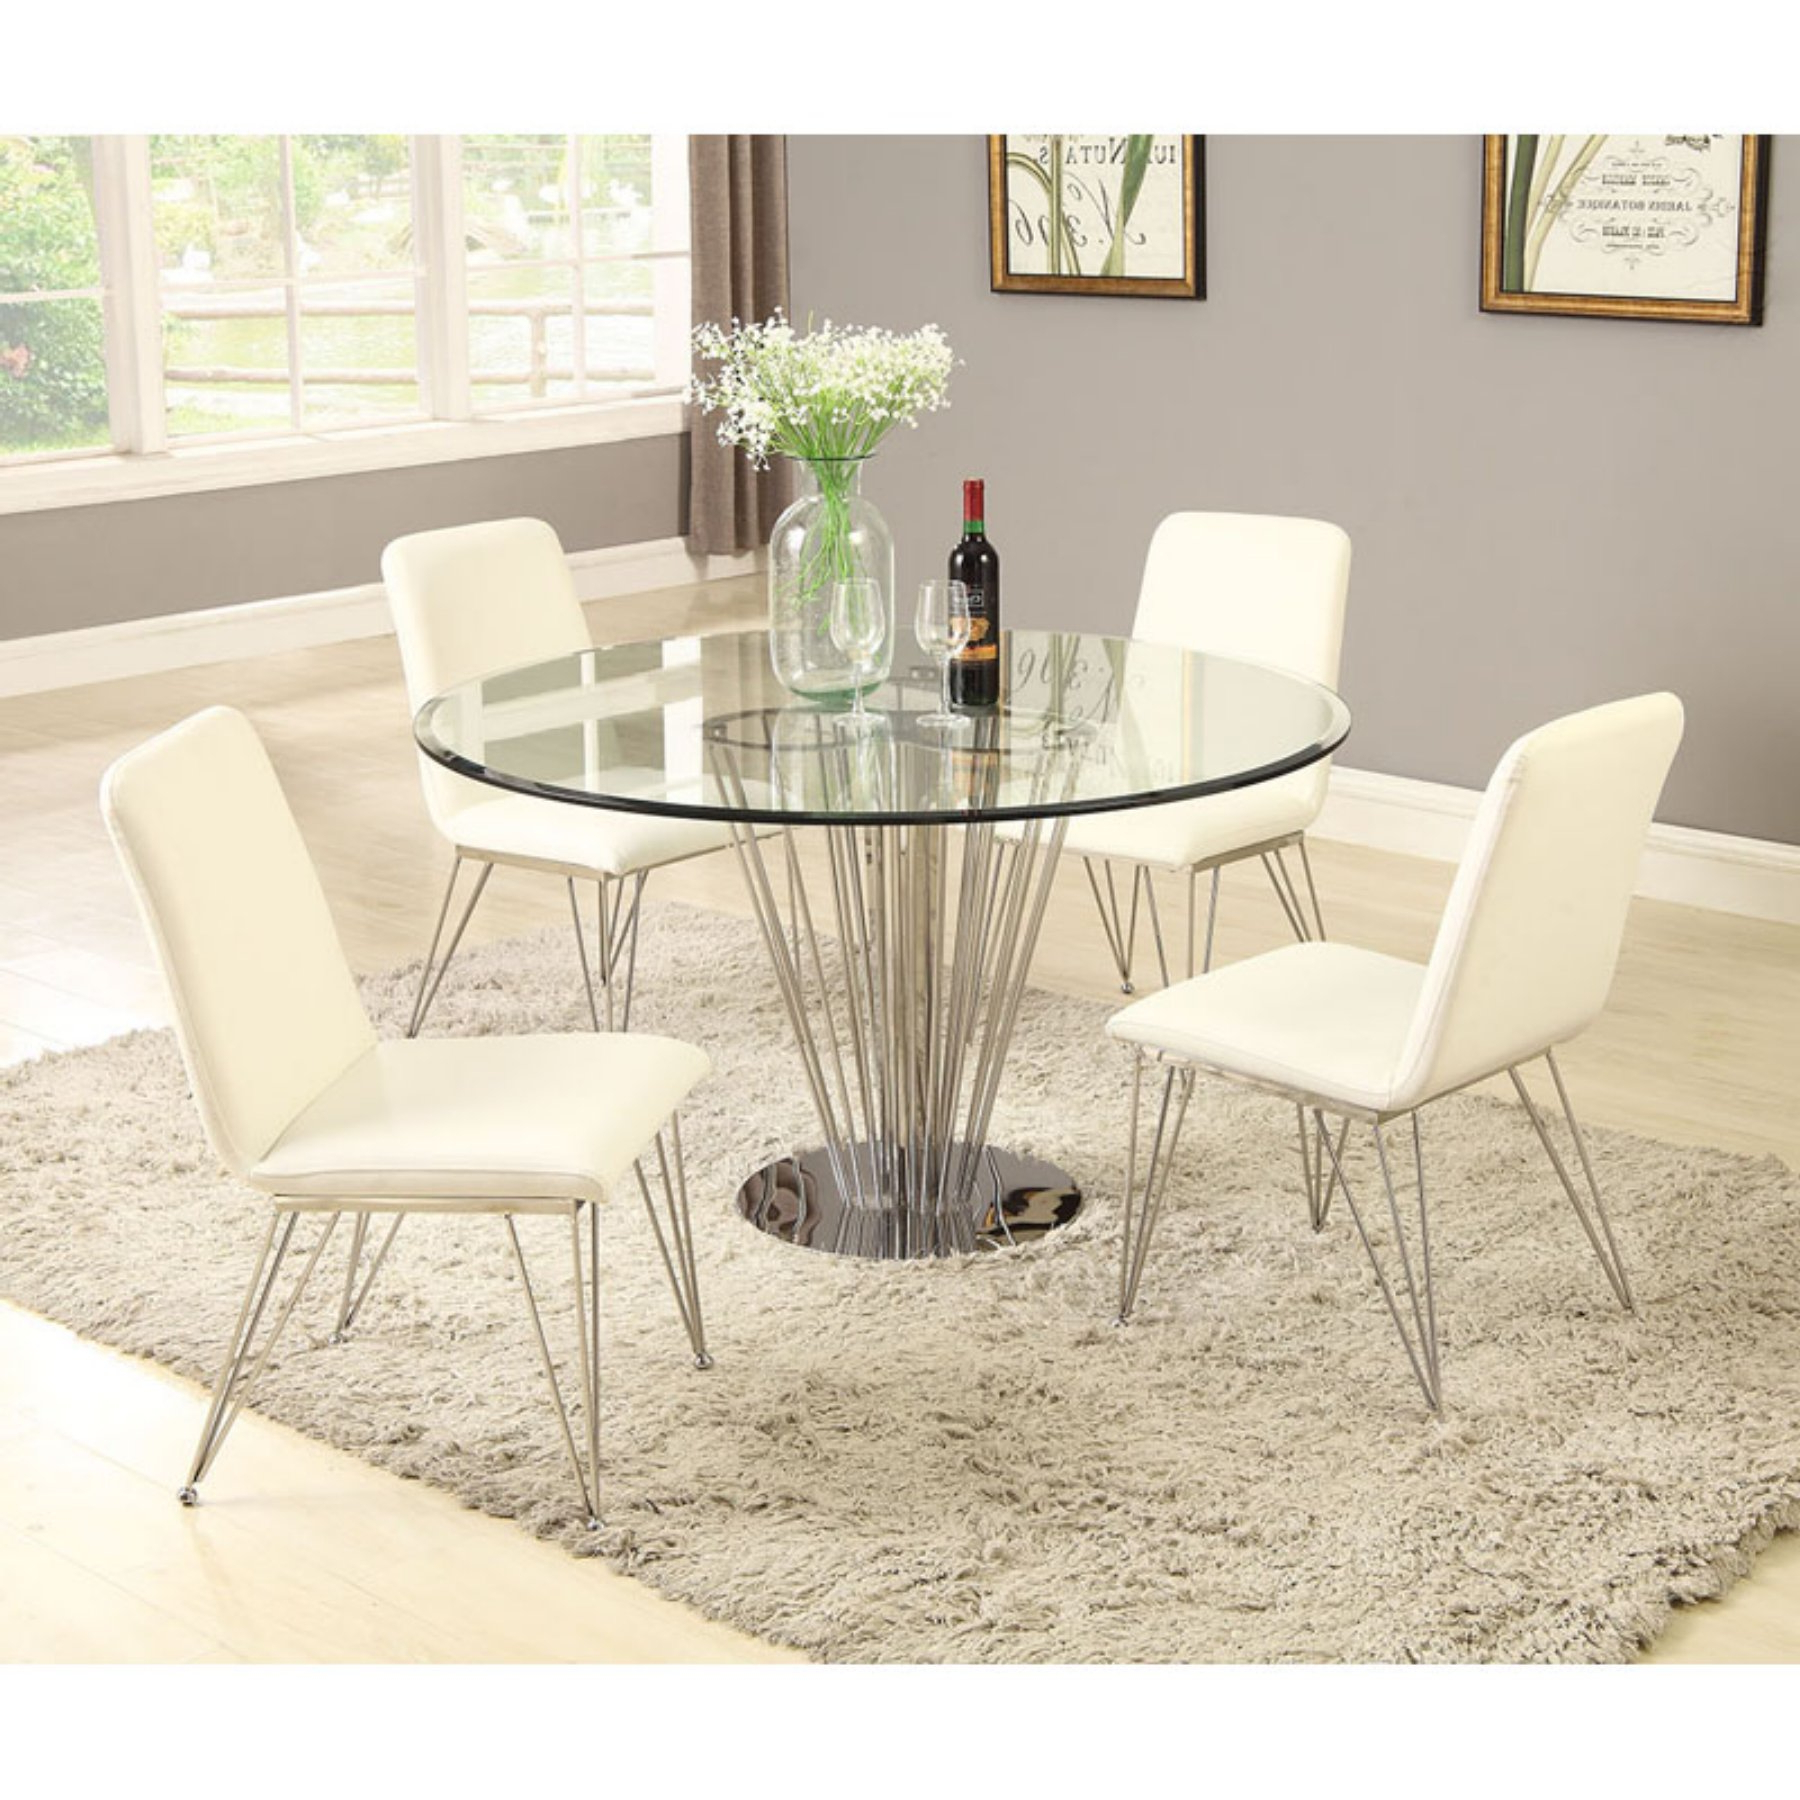 Dining for 2019 Cleary Oval Dining Pedestal Tables